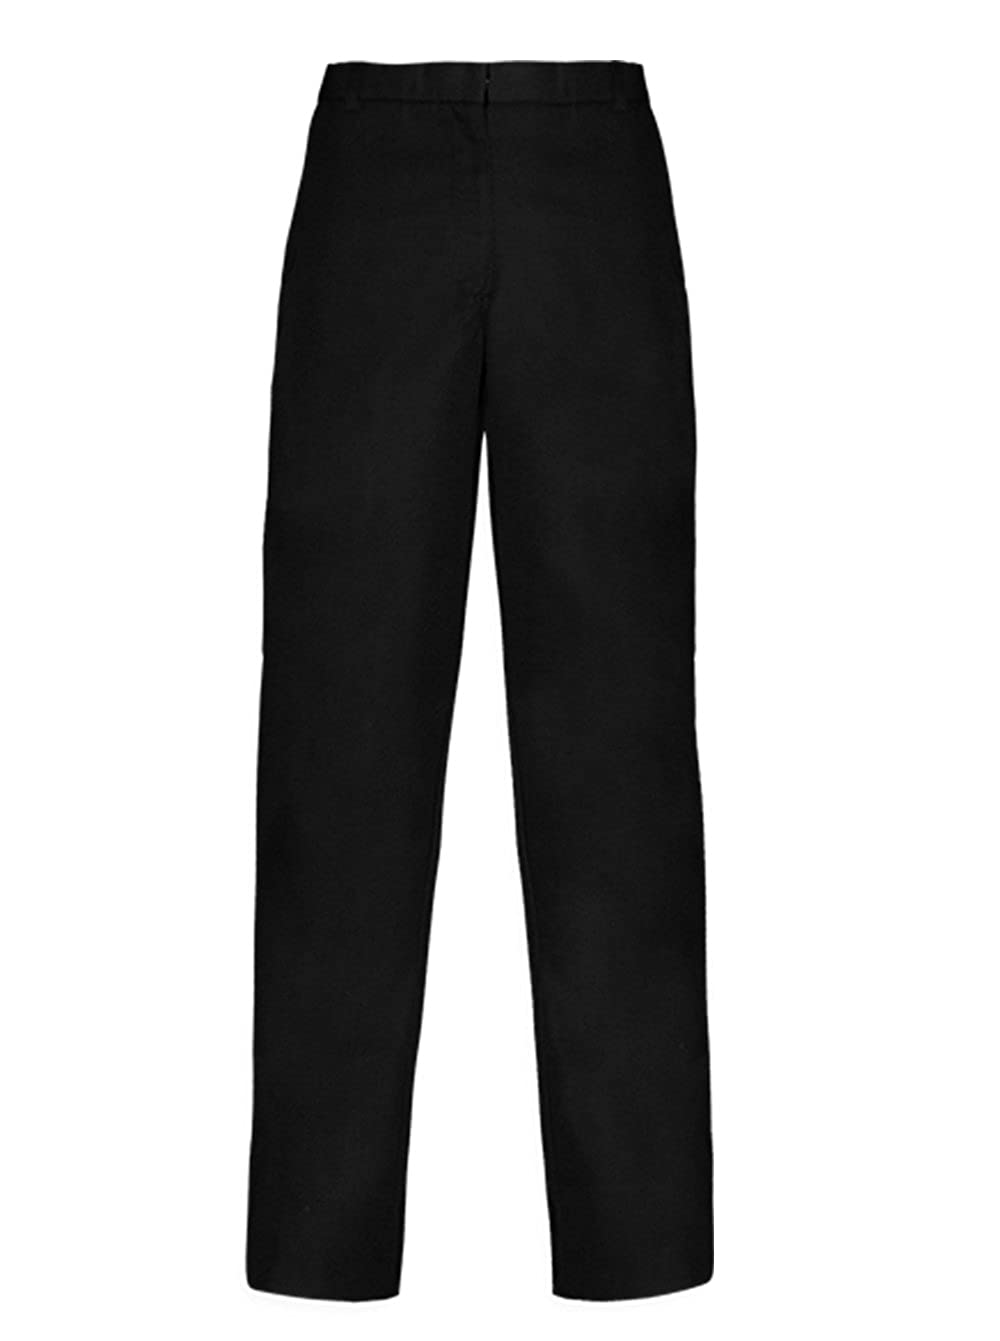 Newchef Fashion Black Female Work Pant